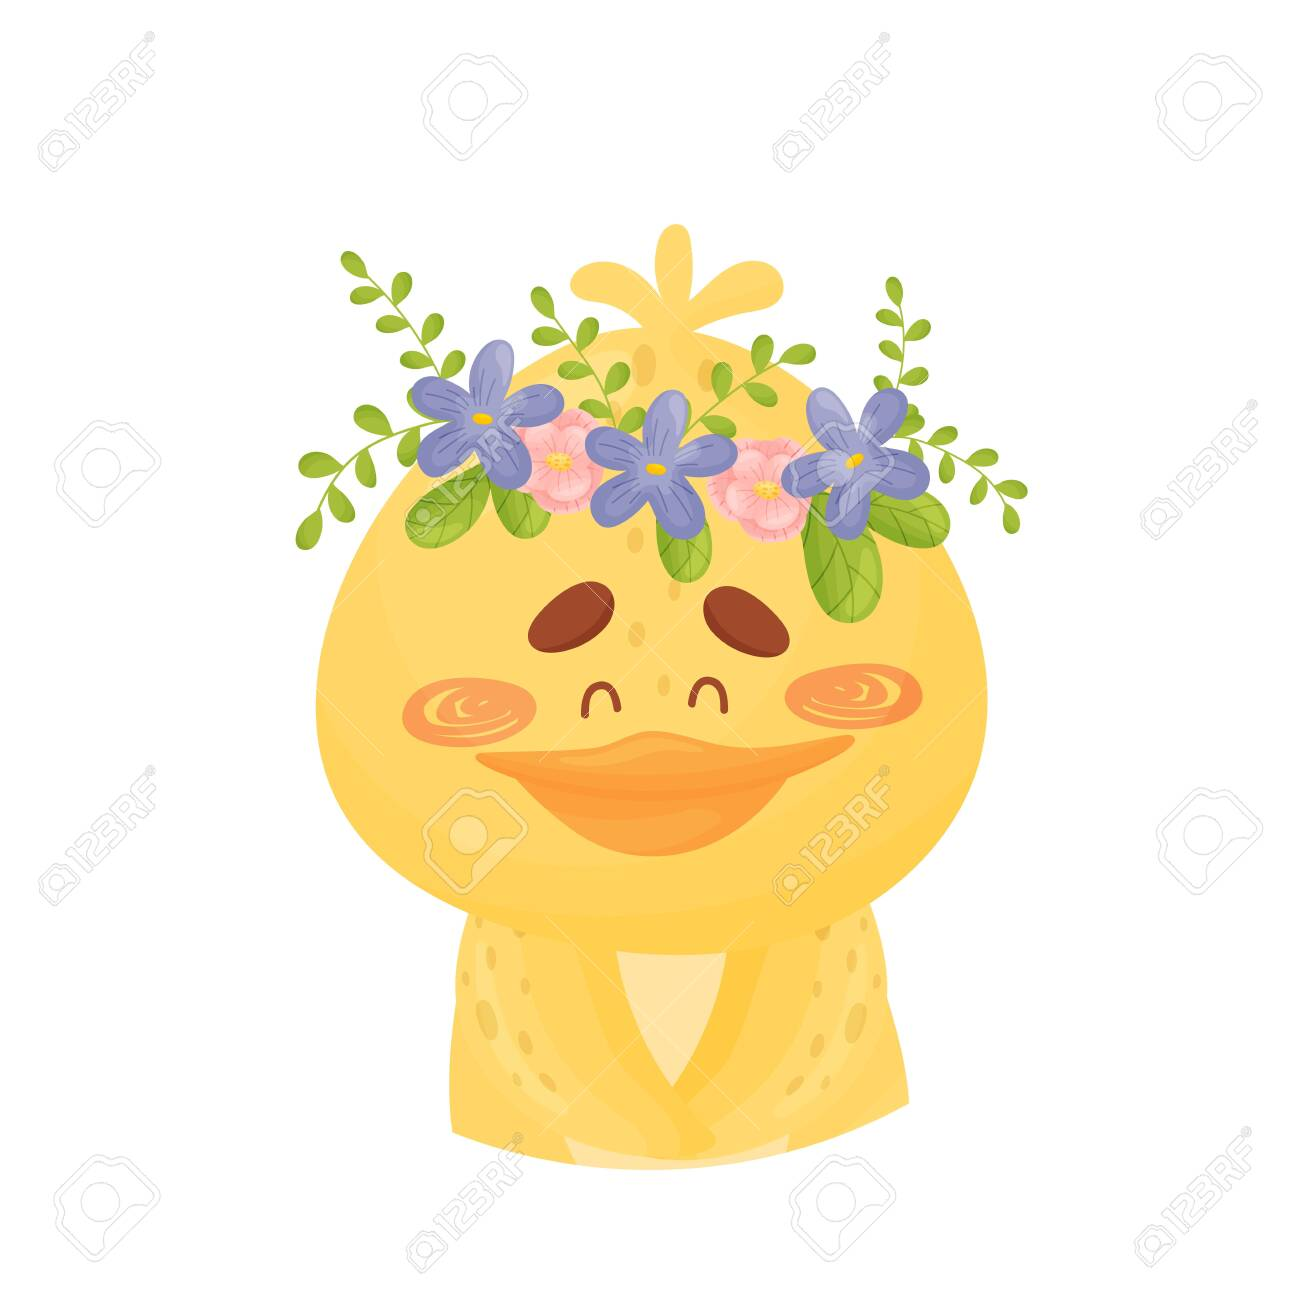 Yellow duckling with a wreath of flowers on her head. Vector illustration on a white background. - 130070654